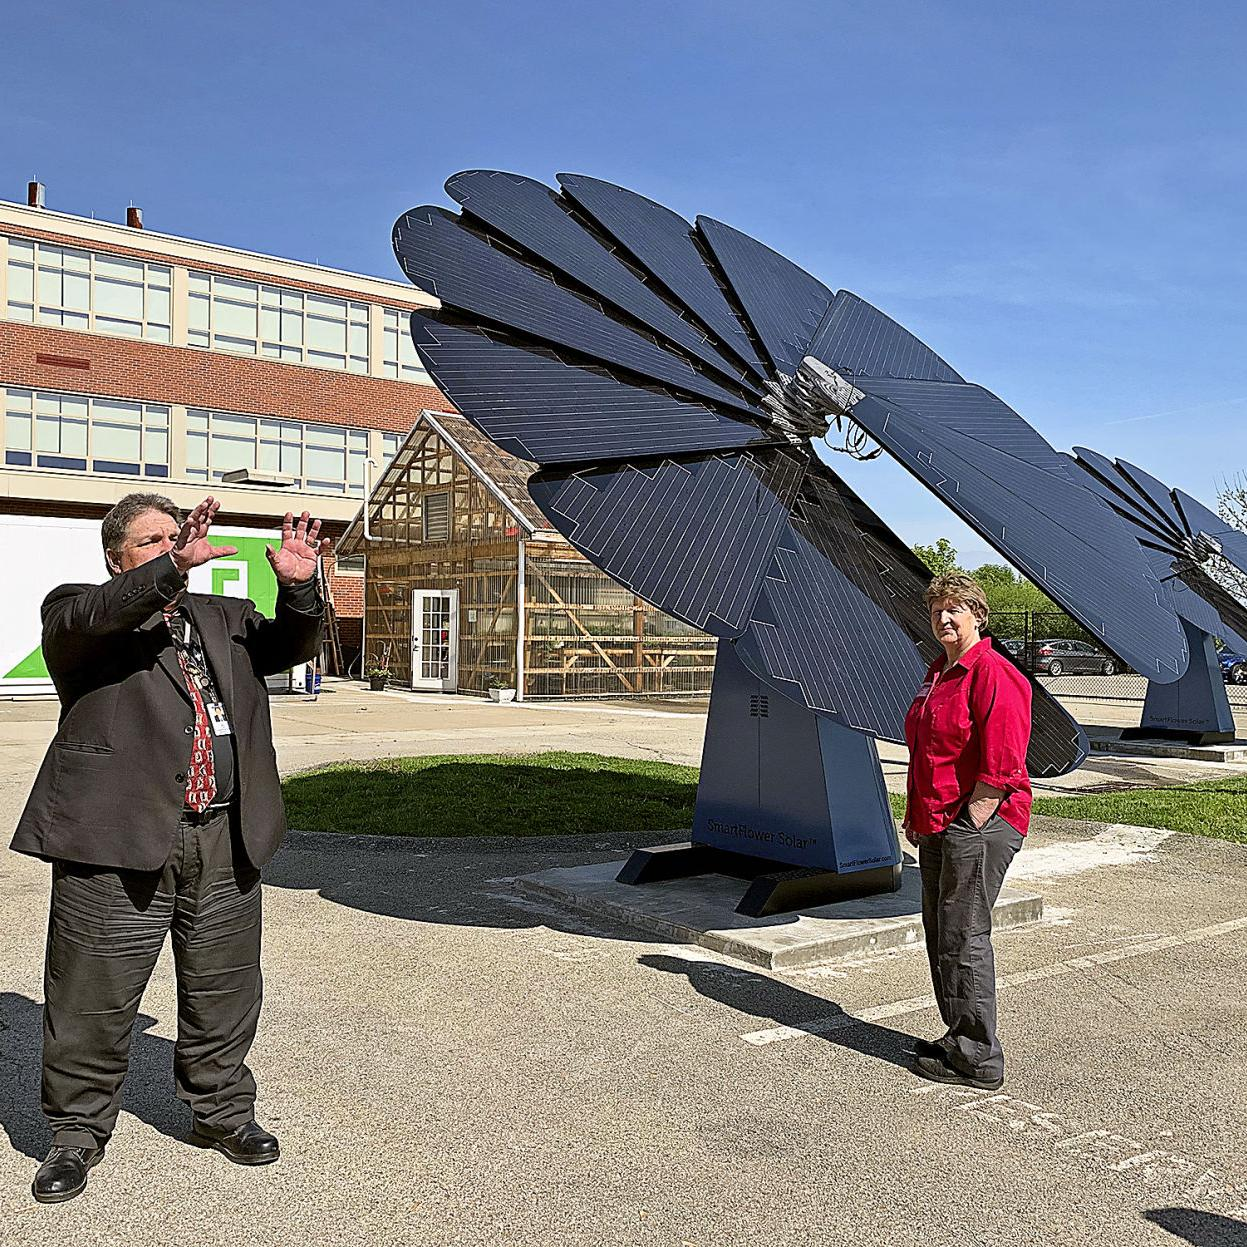 Winds of change at Trinity: School district installs wind turbines